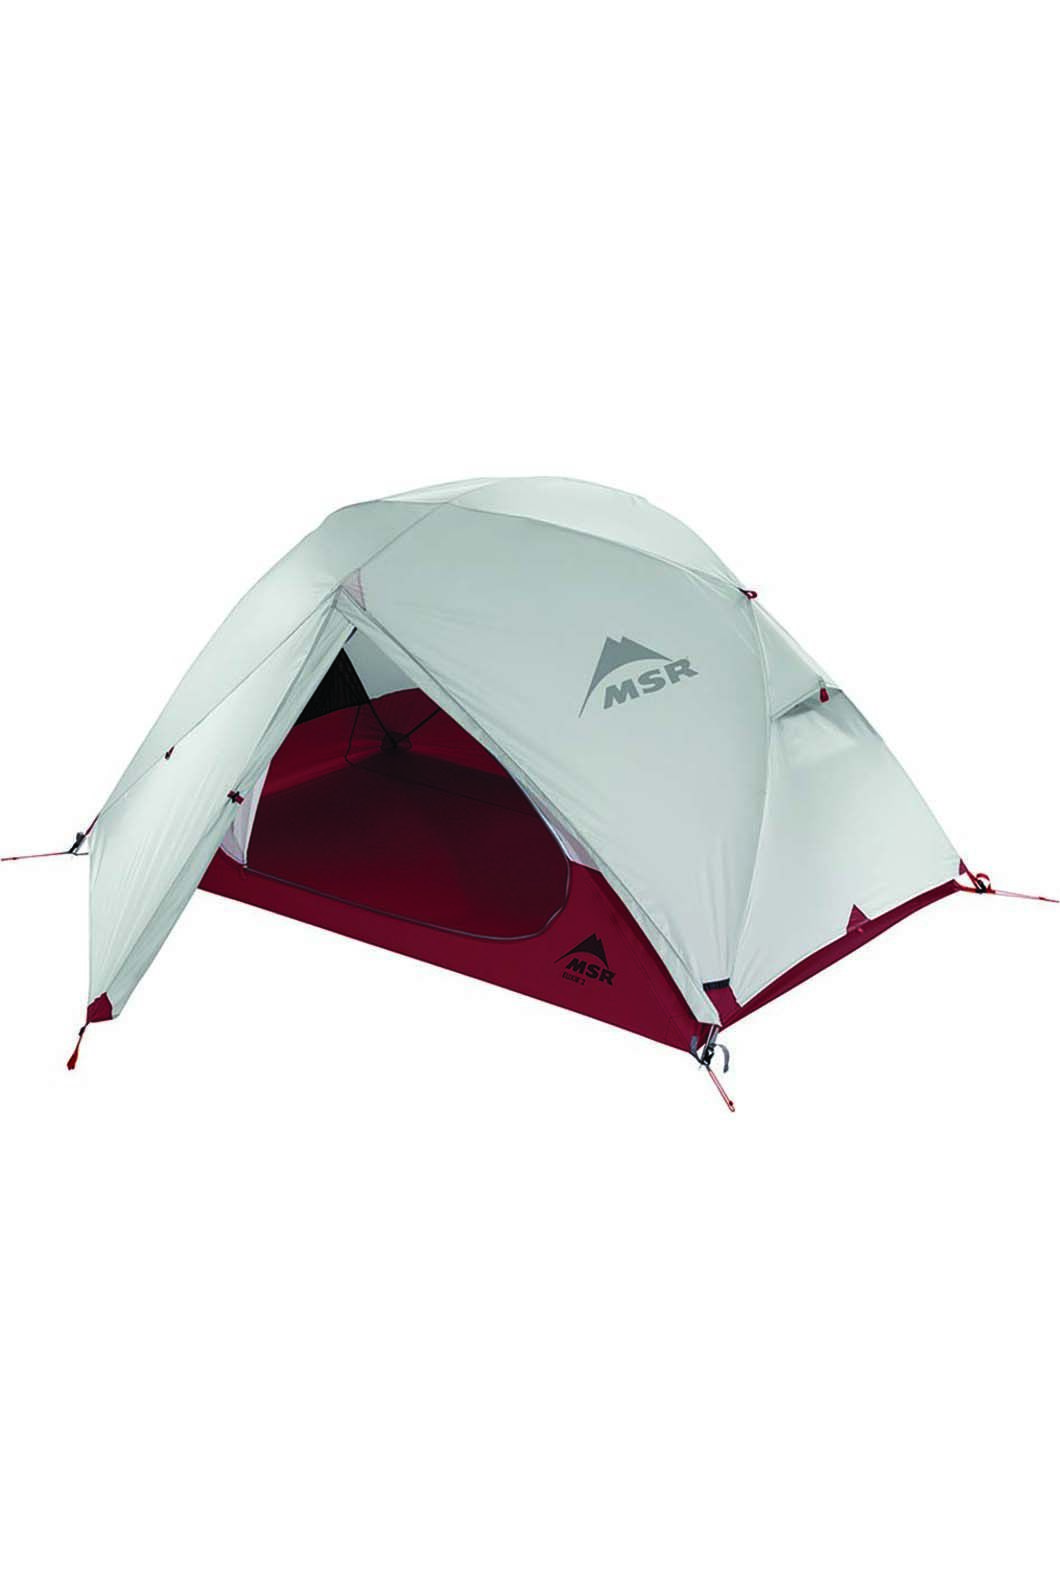 MSR Elixira 2 Person Hiking Tent, None, hi-res